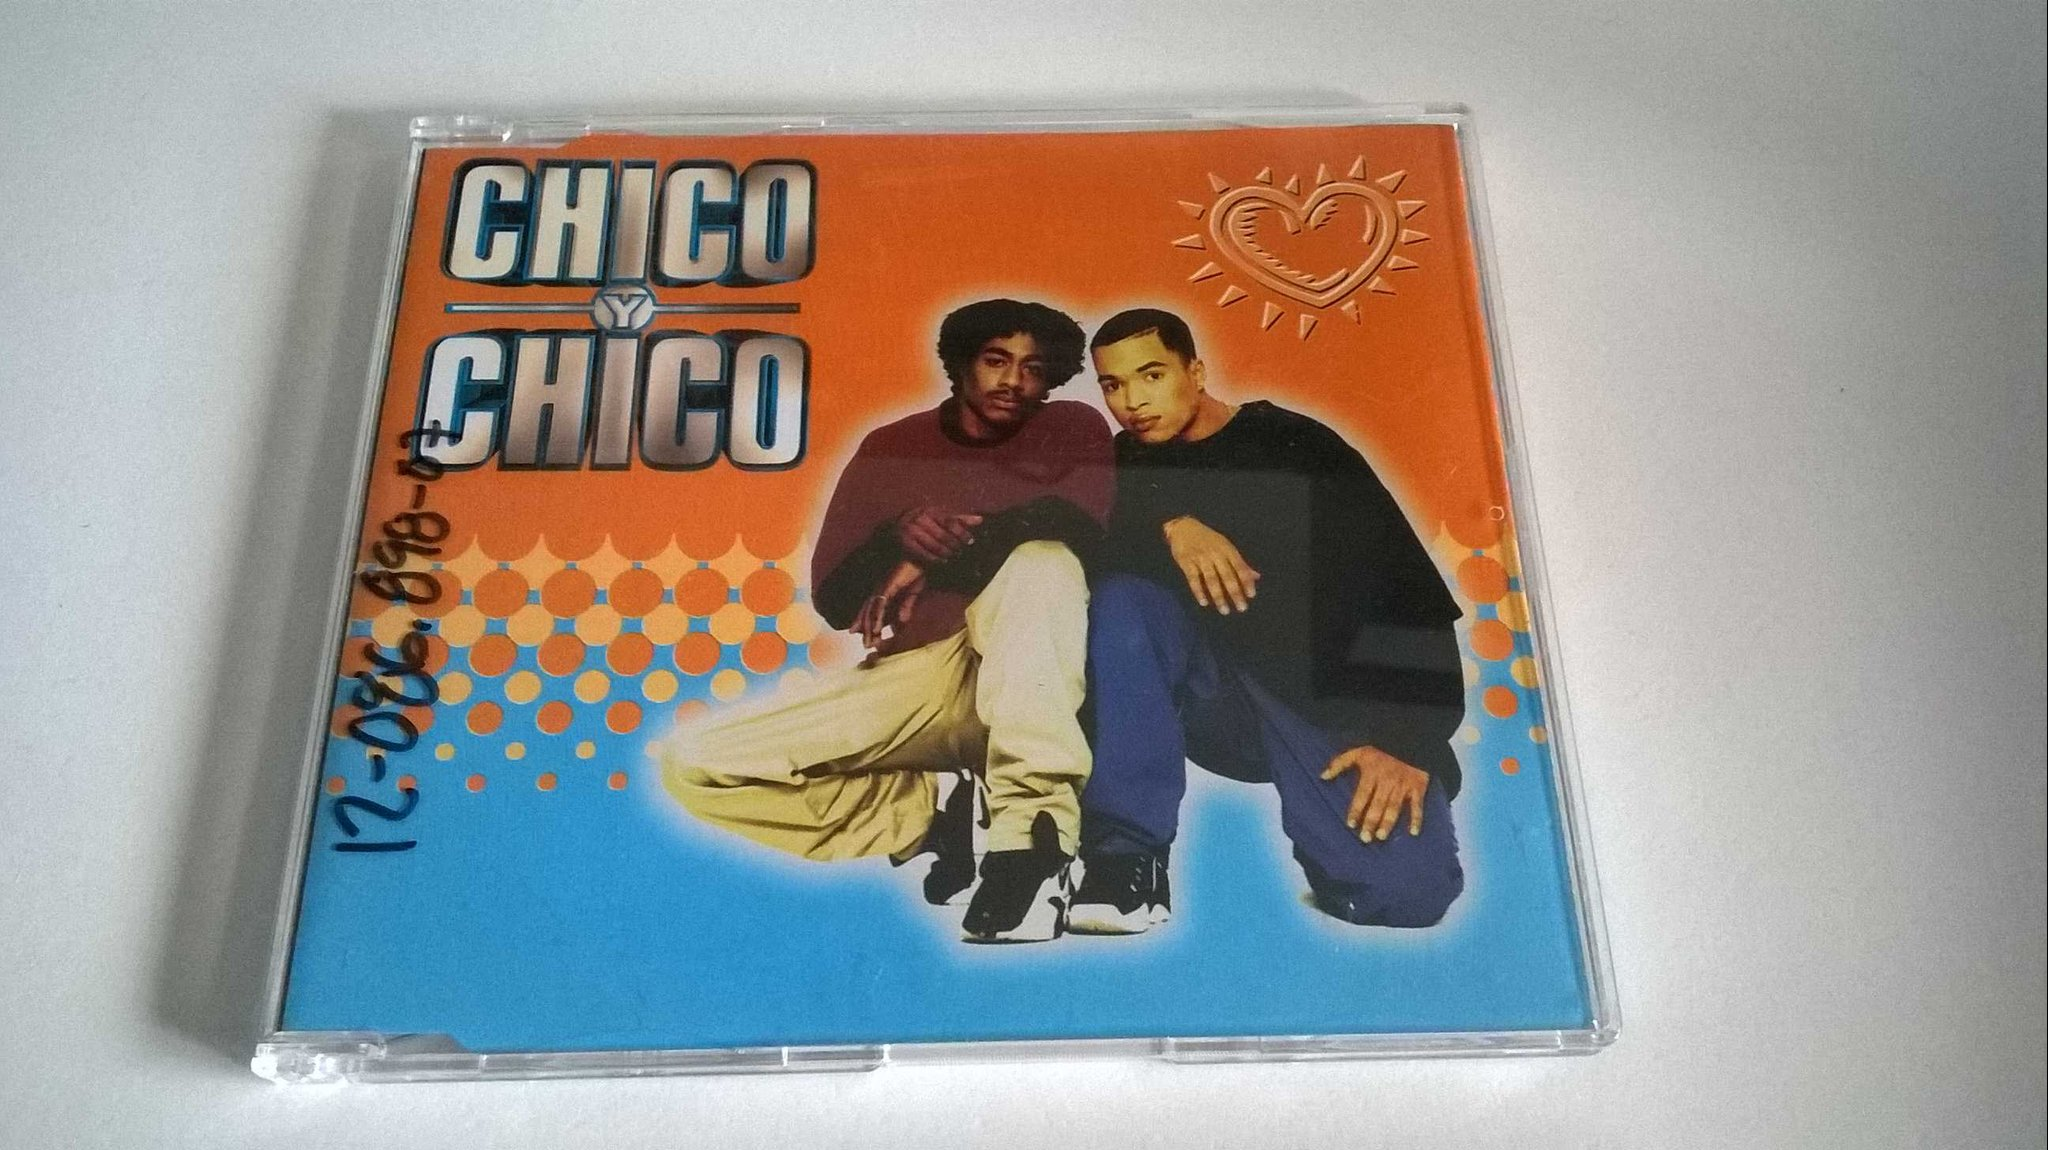 Chico Y Chico - Besame, CD